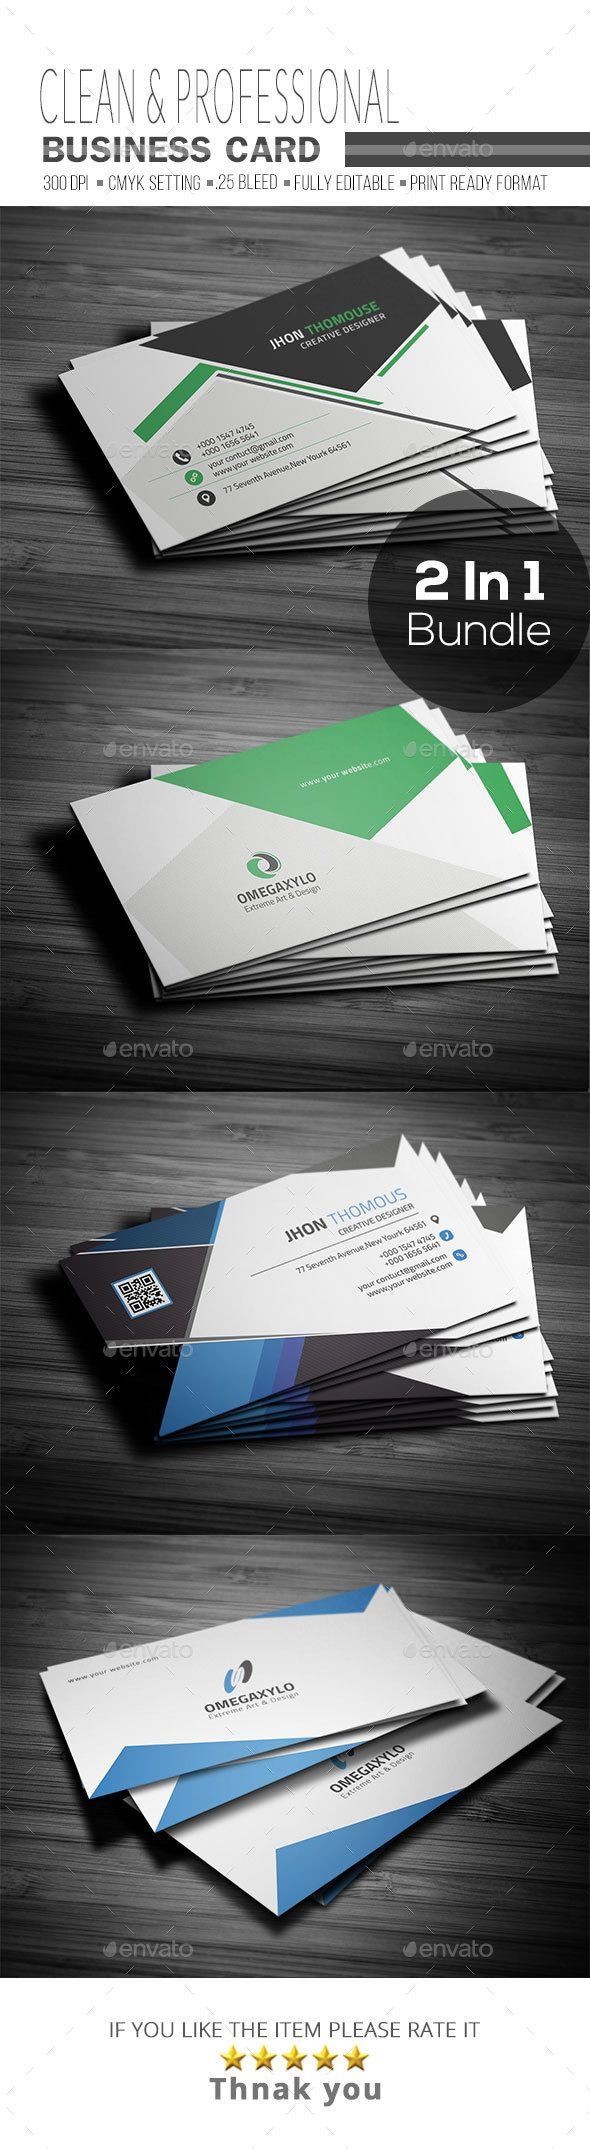 Business card star download choice image card design and card template businesscardstar make business cards choice image card design and enchanting business card makers picture collection business reheart Gallery